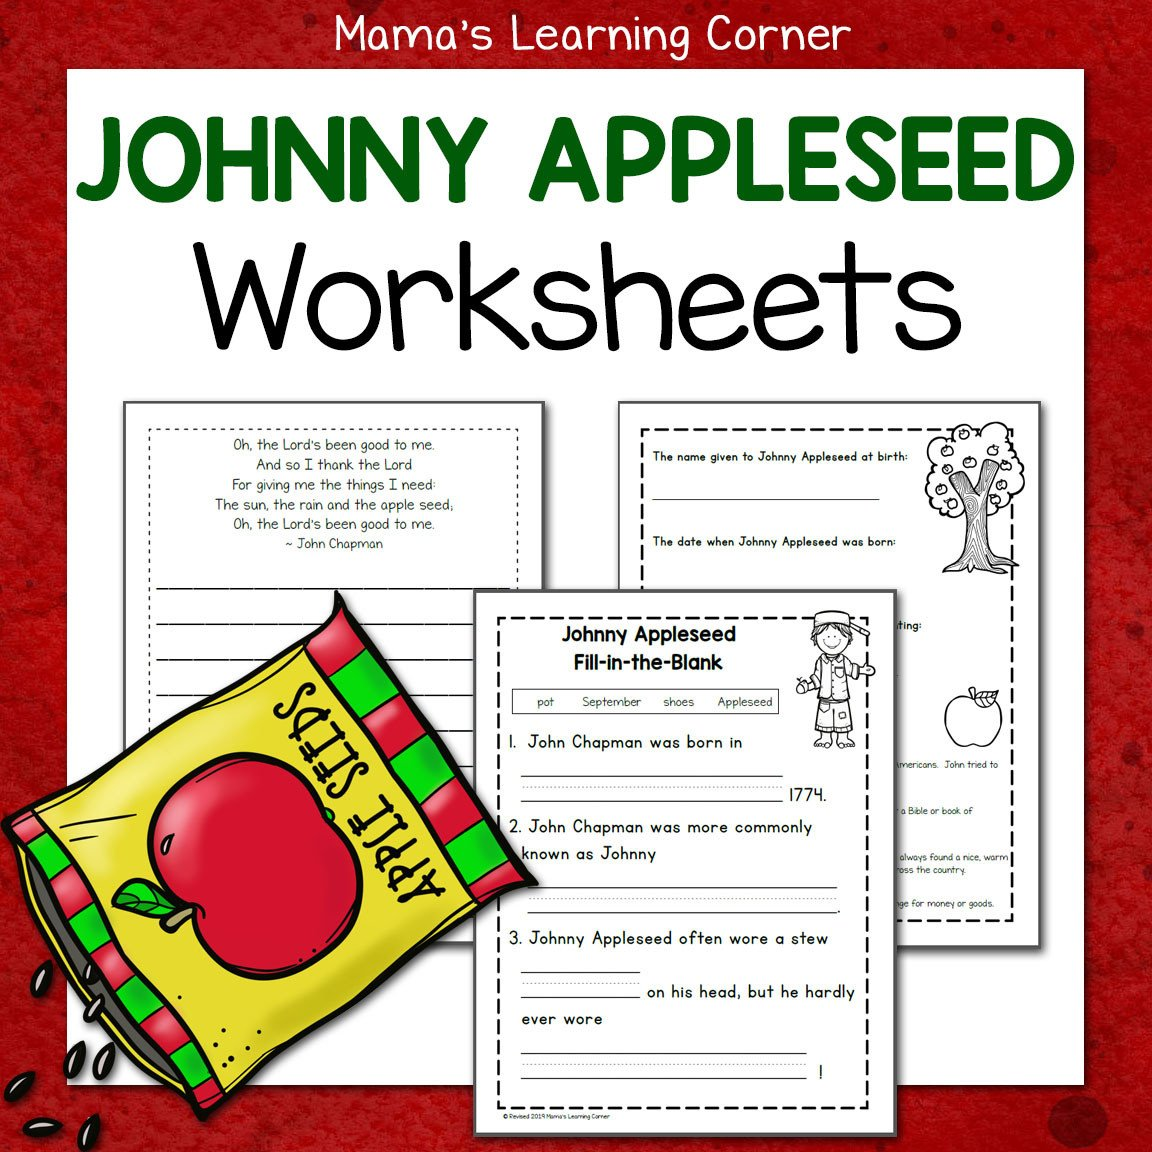 Johnny Appleseed Worksheets 8x8